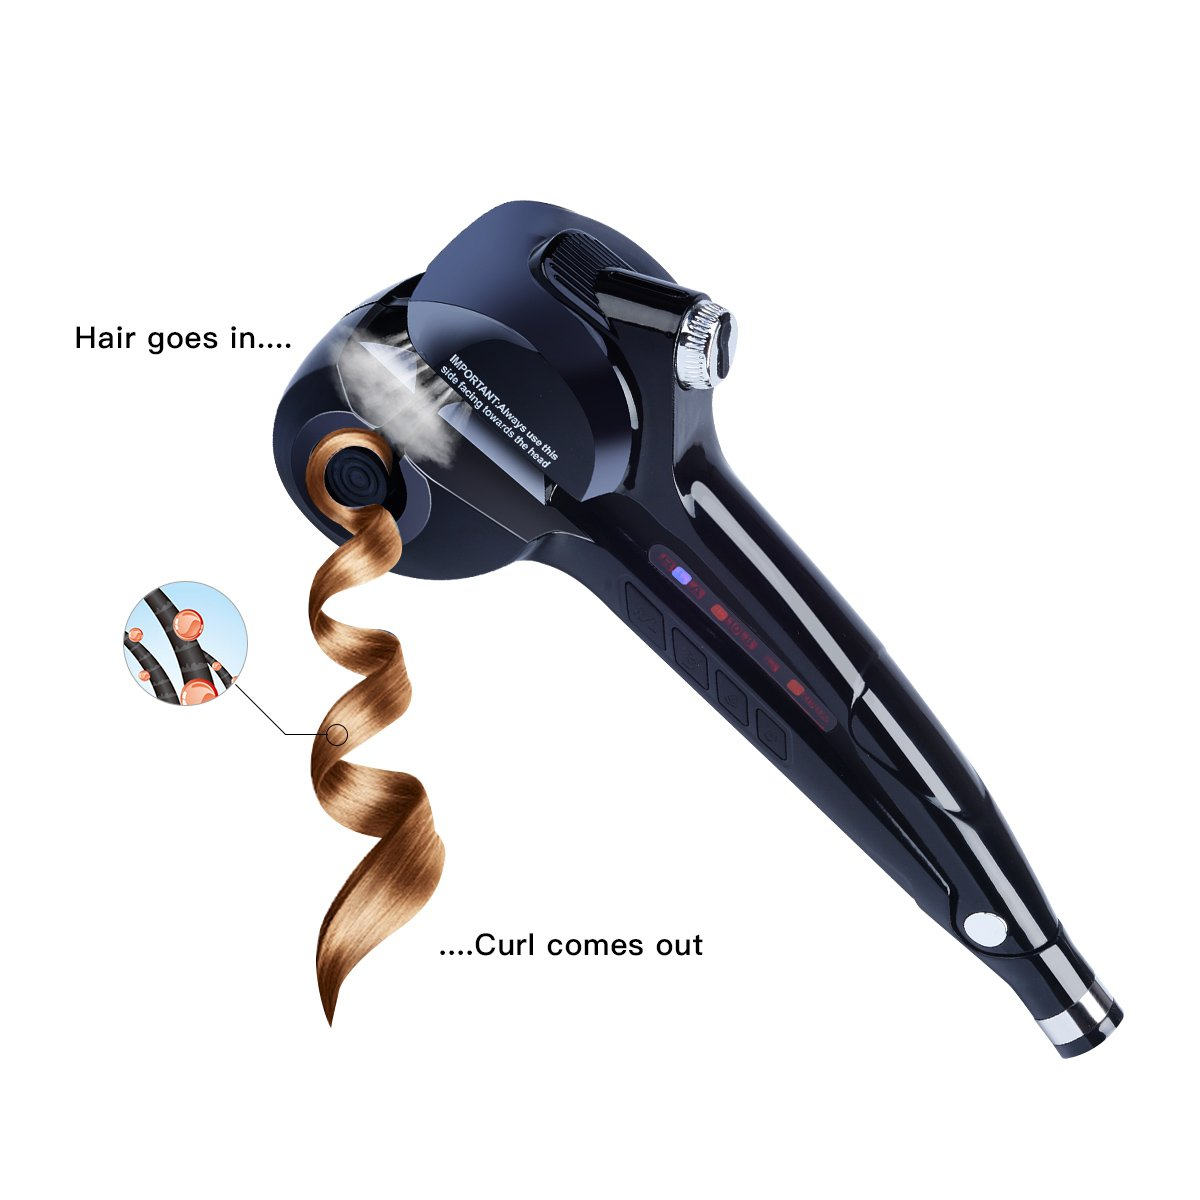 Amazon.com: Curling Iron-CkeyiN Professional Automatic Hair Steam Curler with LED Digital Display for Beautiful Style & Shine-No Damage to Your Hair and ...